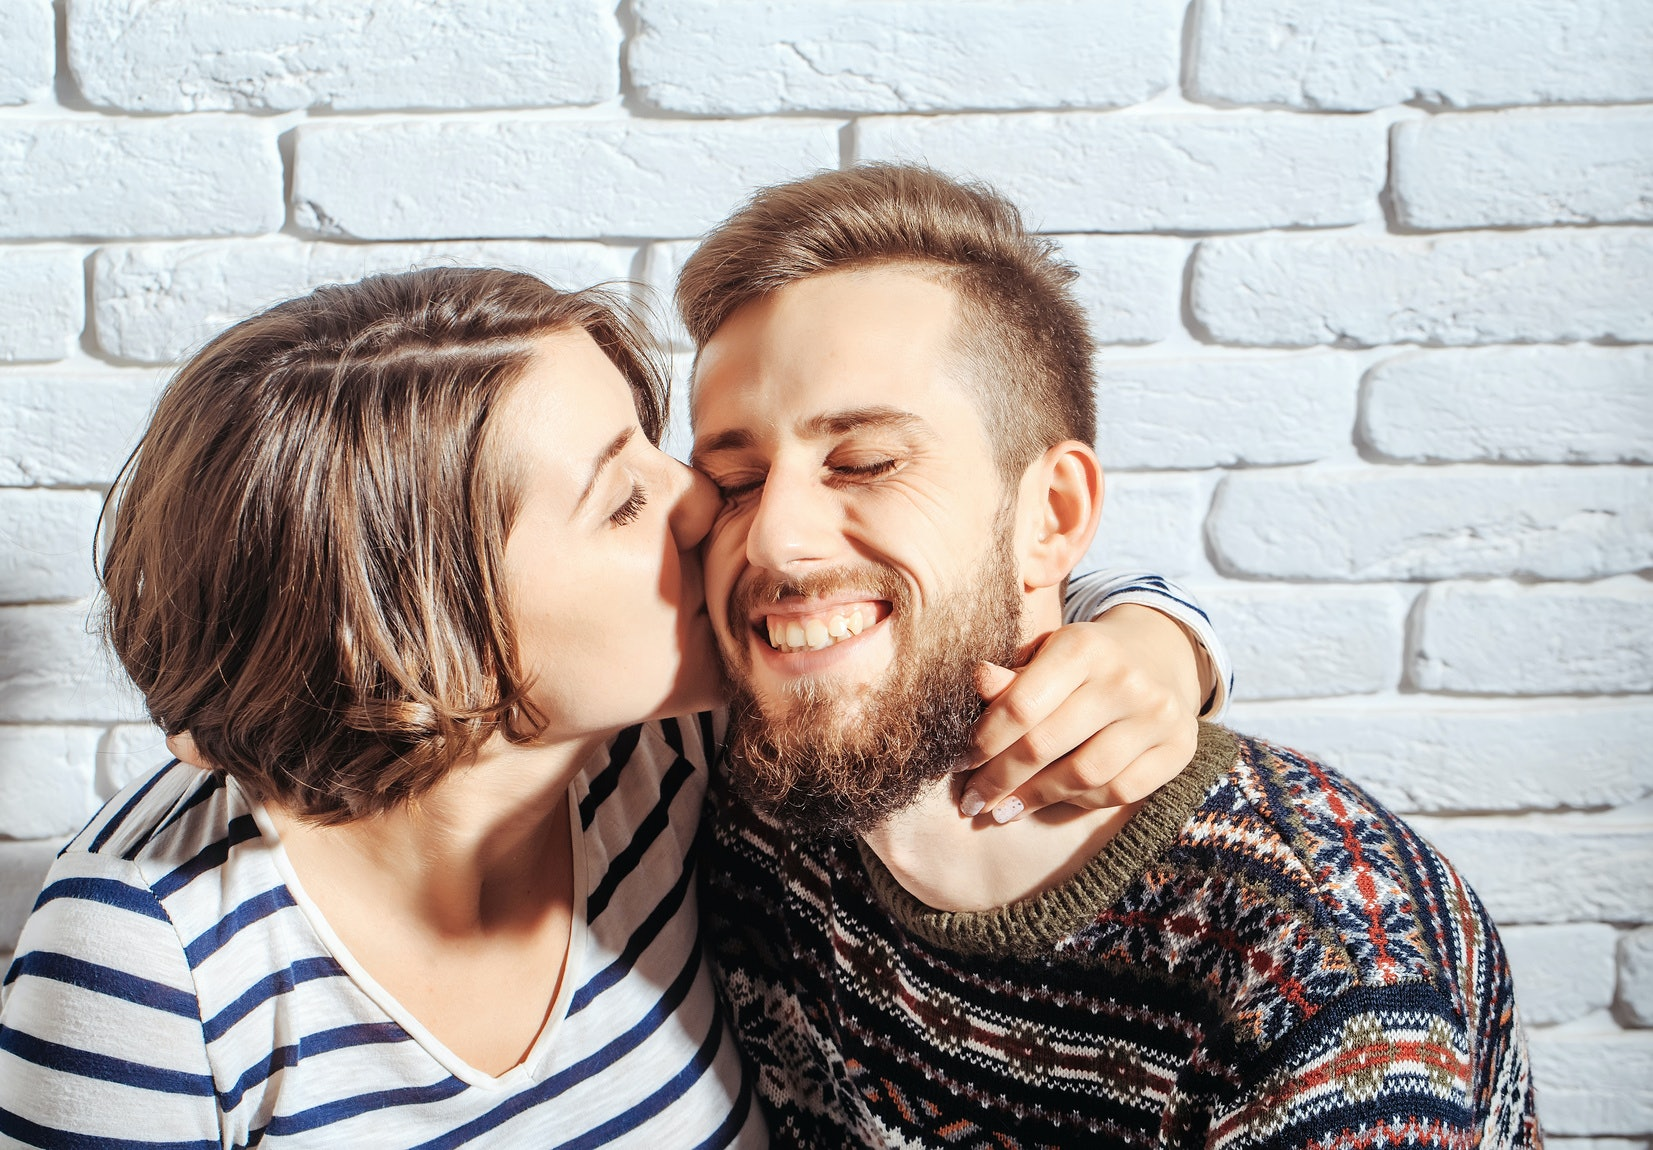 How long after hookup should you kiss